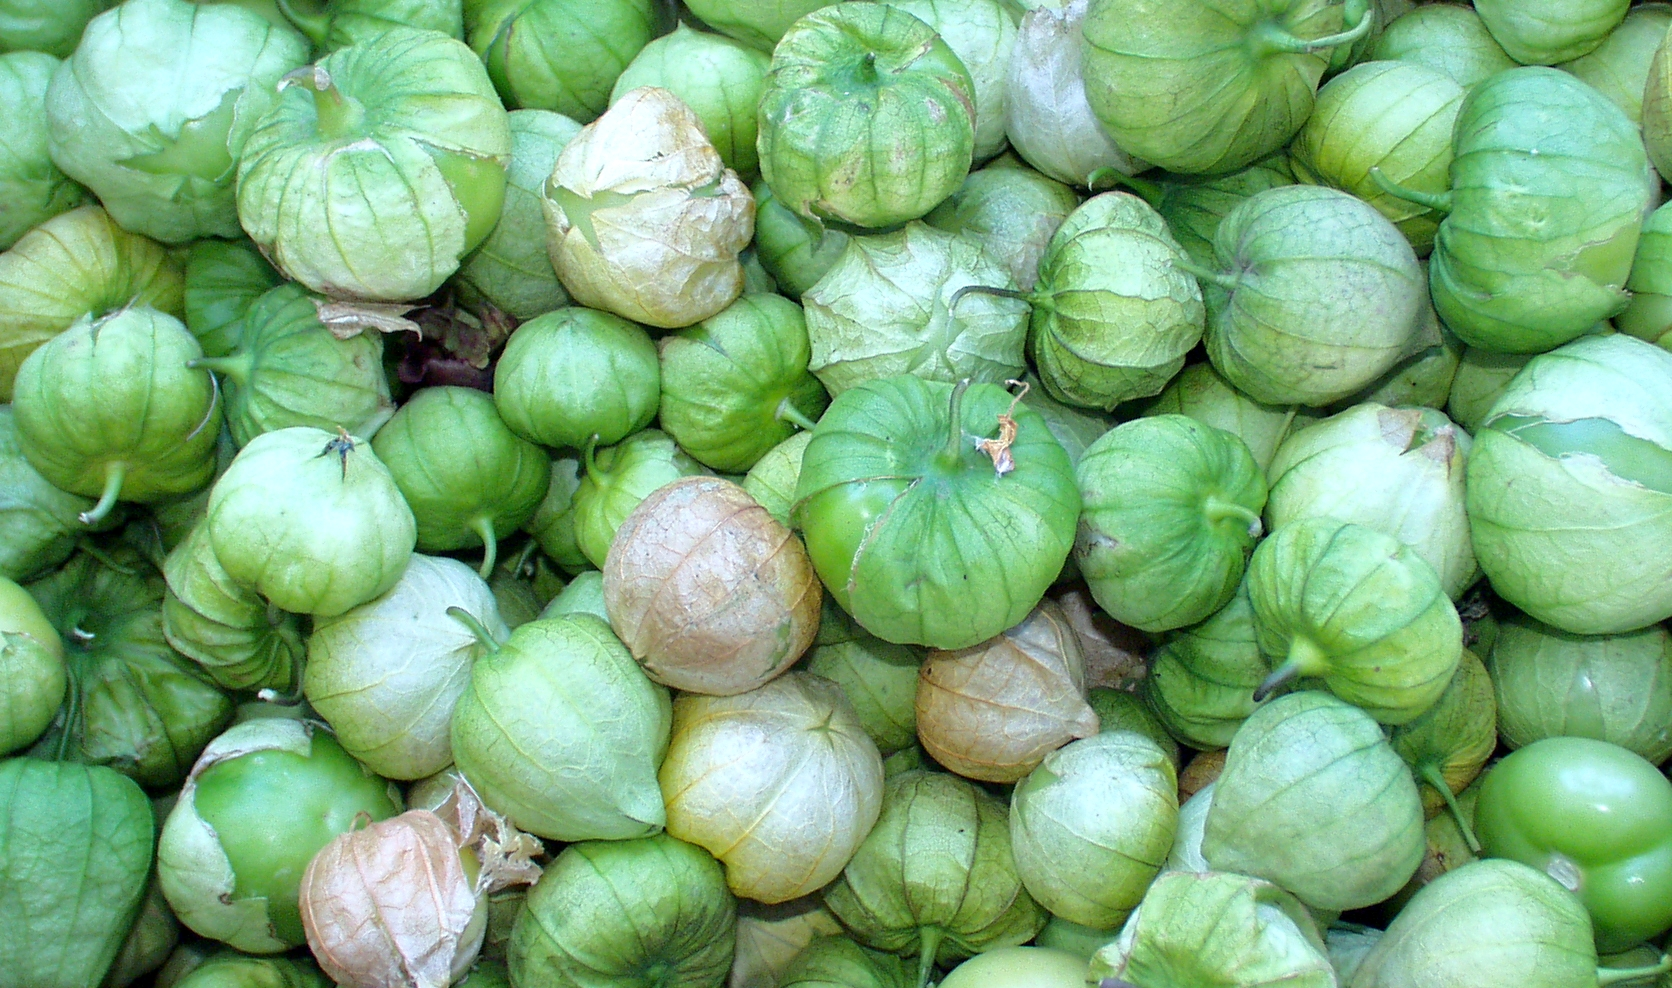 Tomatillos from Alvarez Organic Farms. Photo copyright 2009 by Zachary D. Lyons.